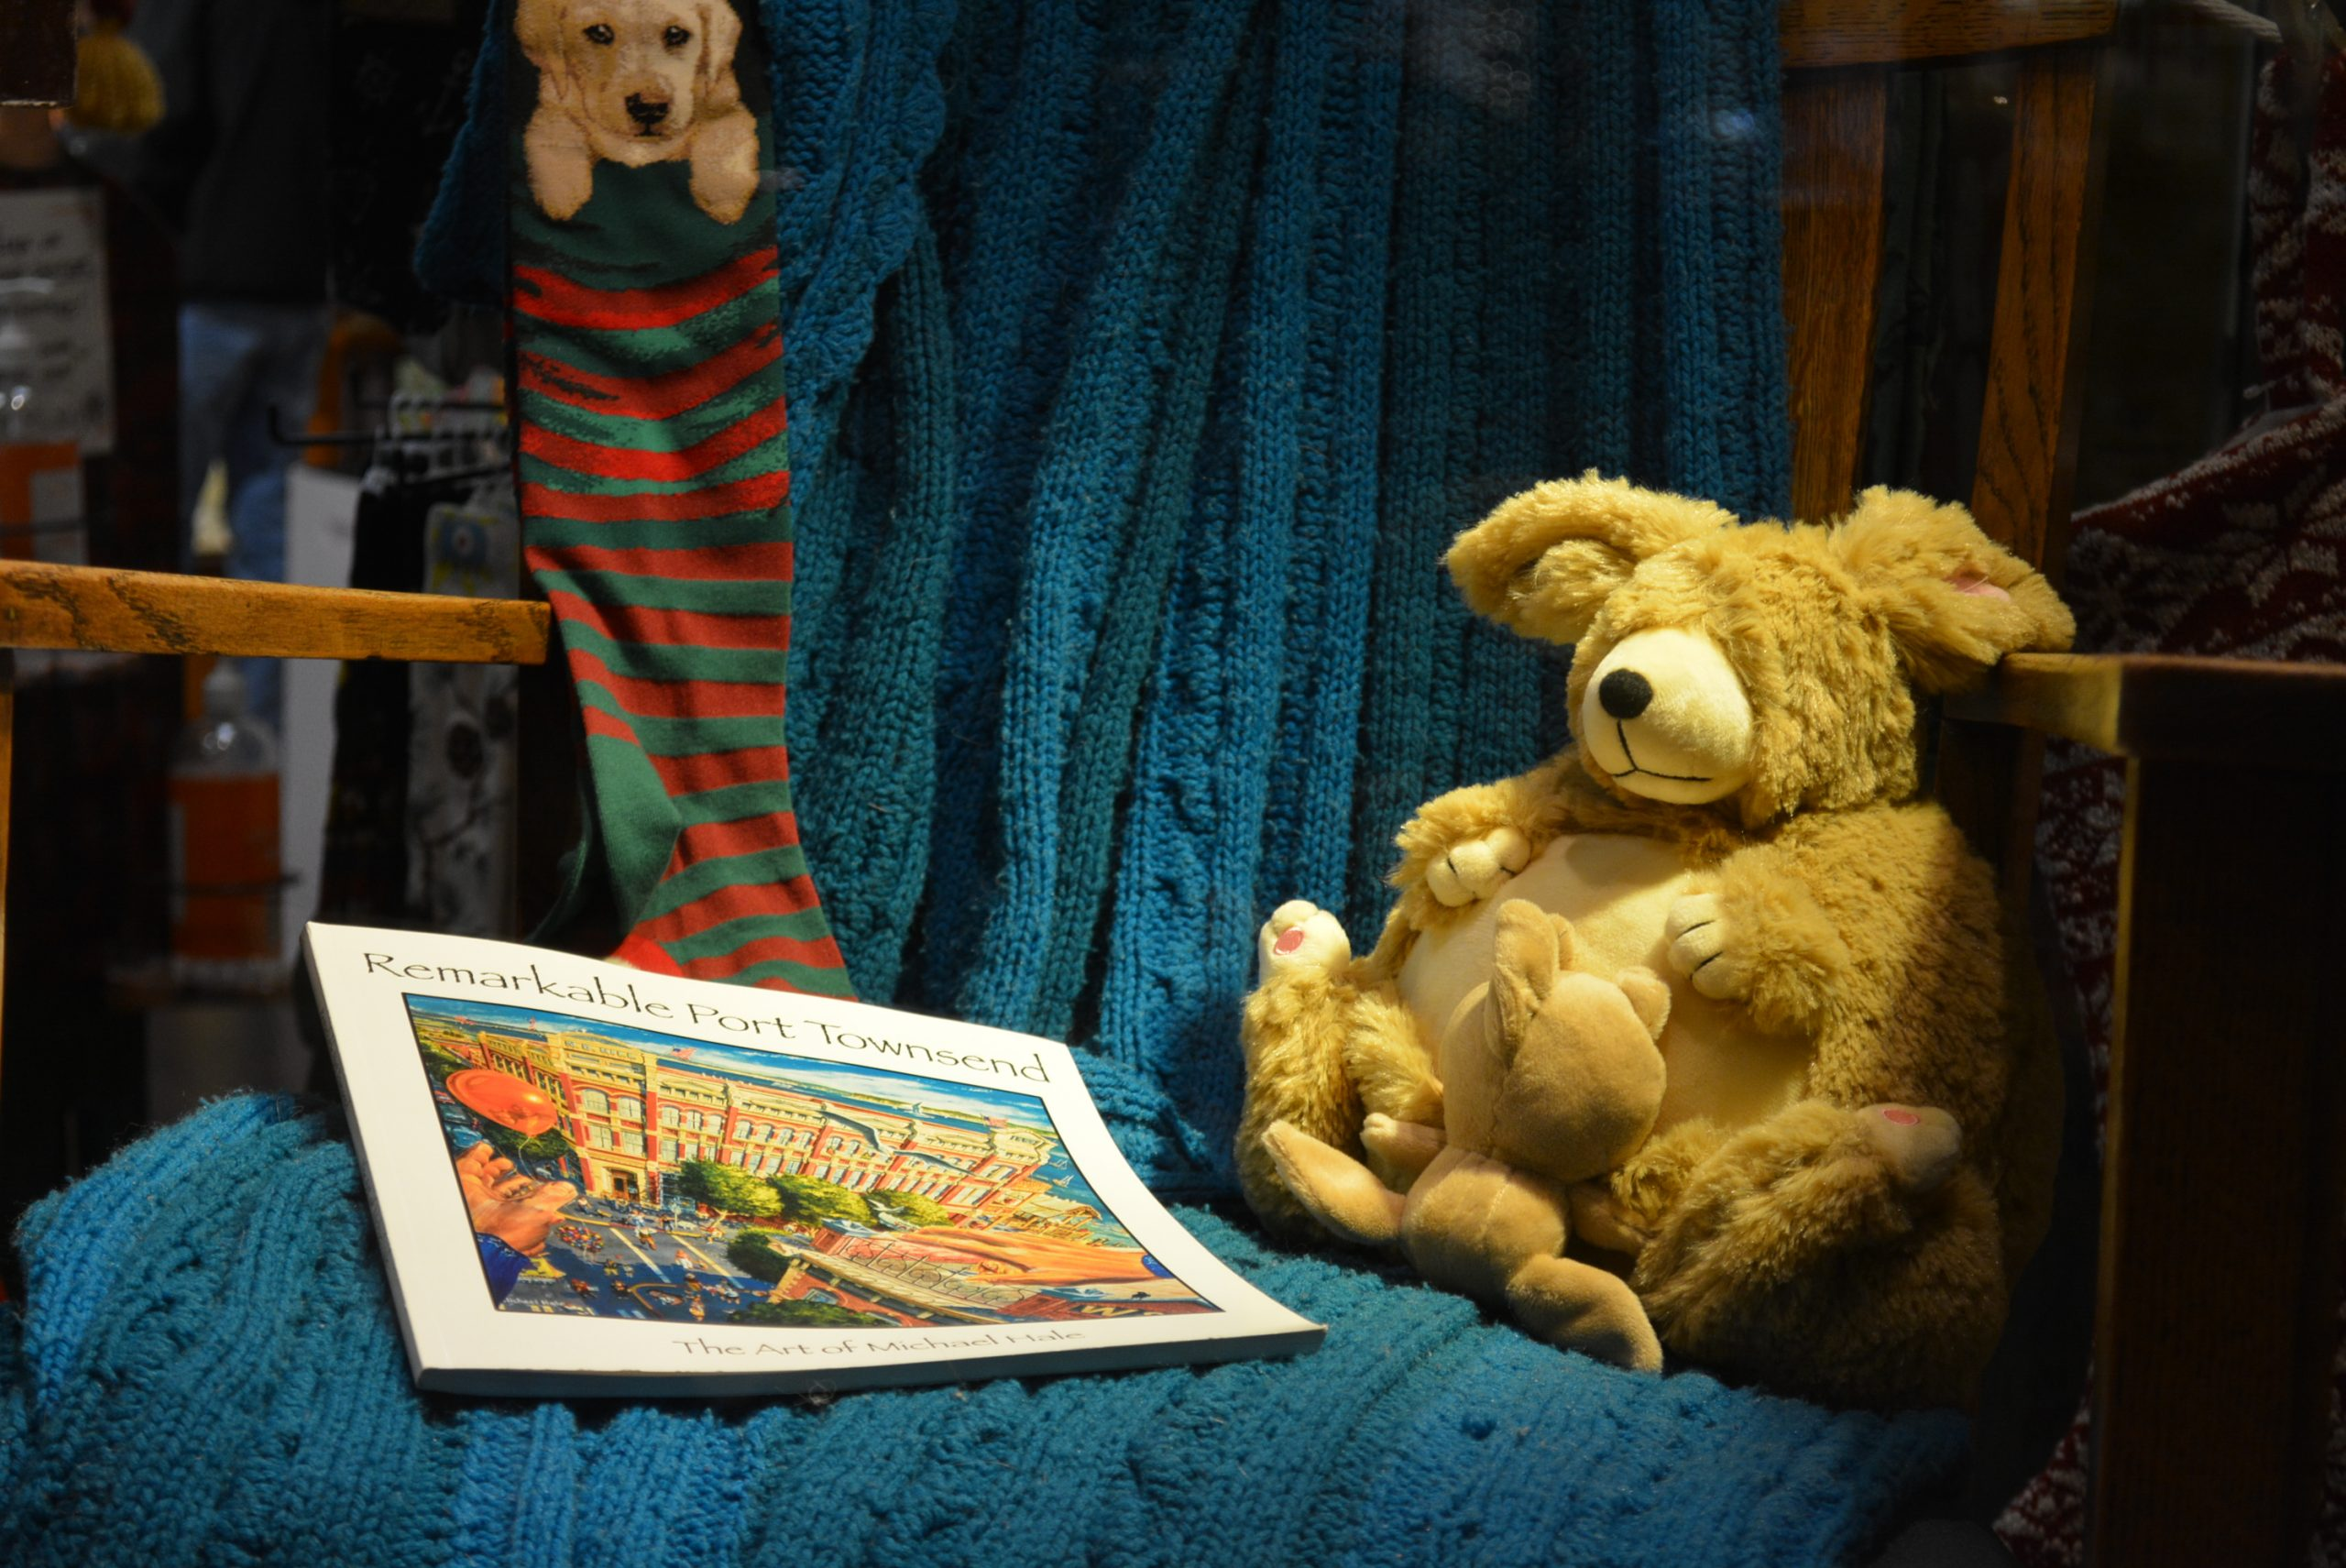 Remarkable Port Townsend book and Teddy Bear